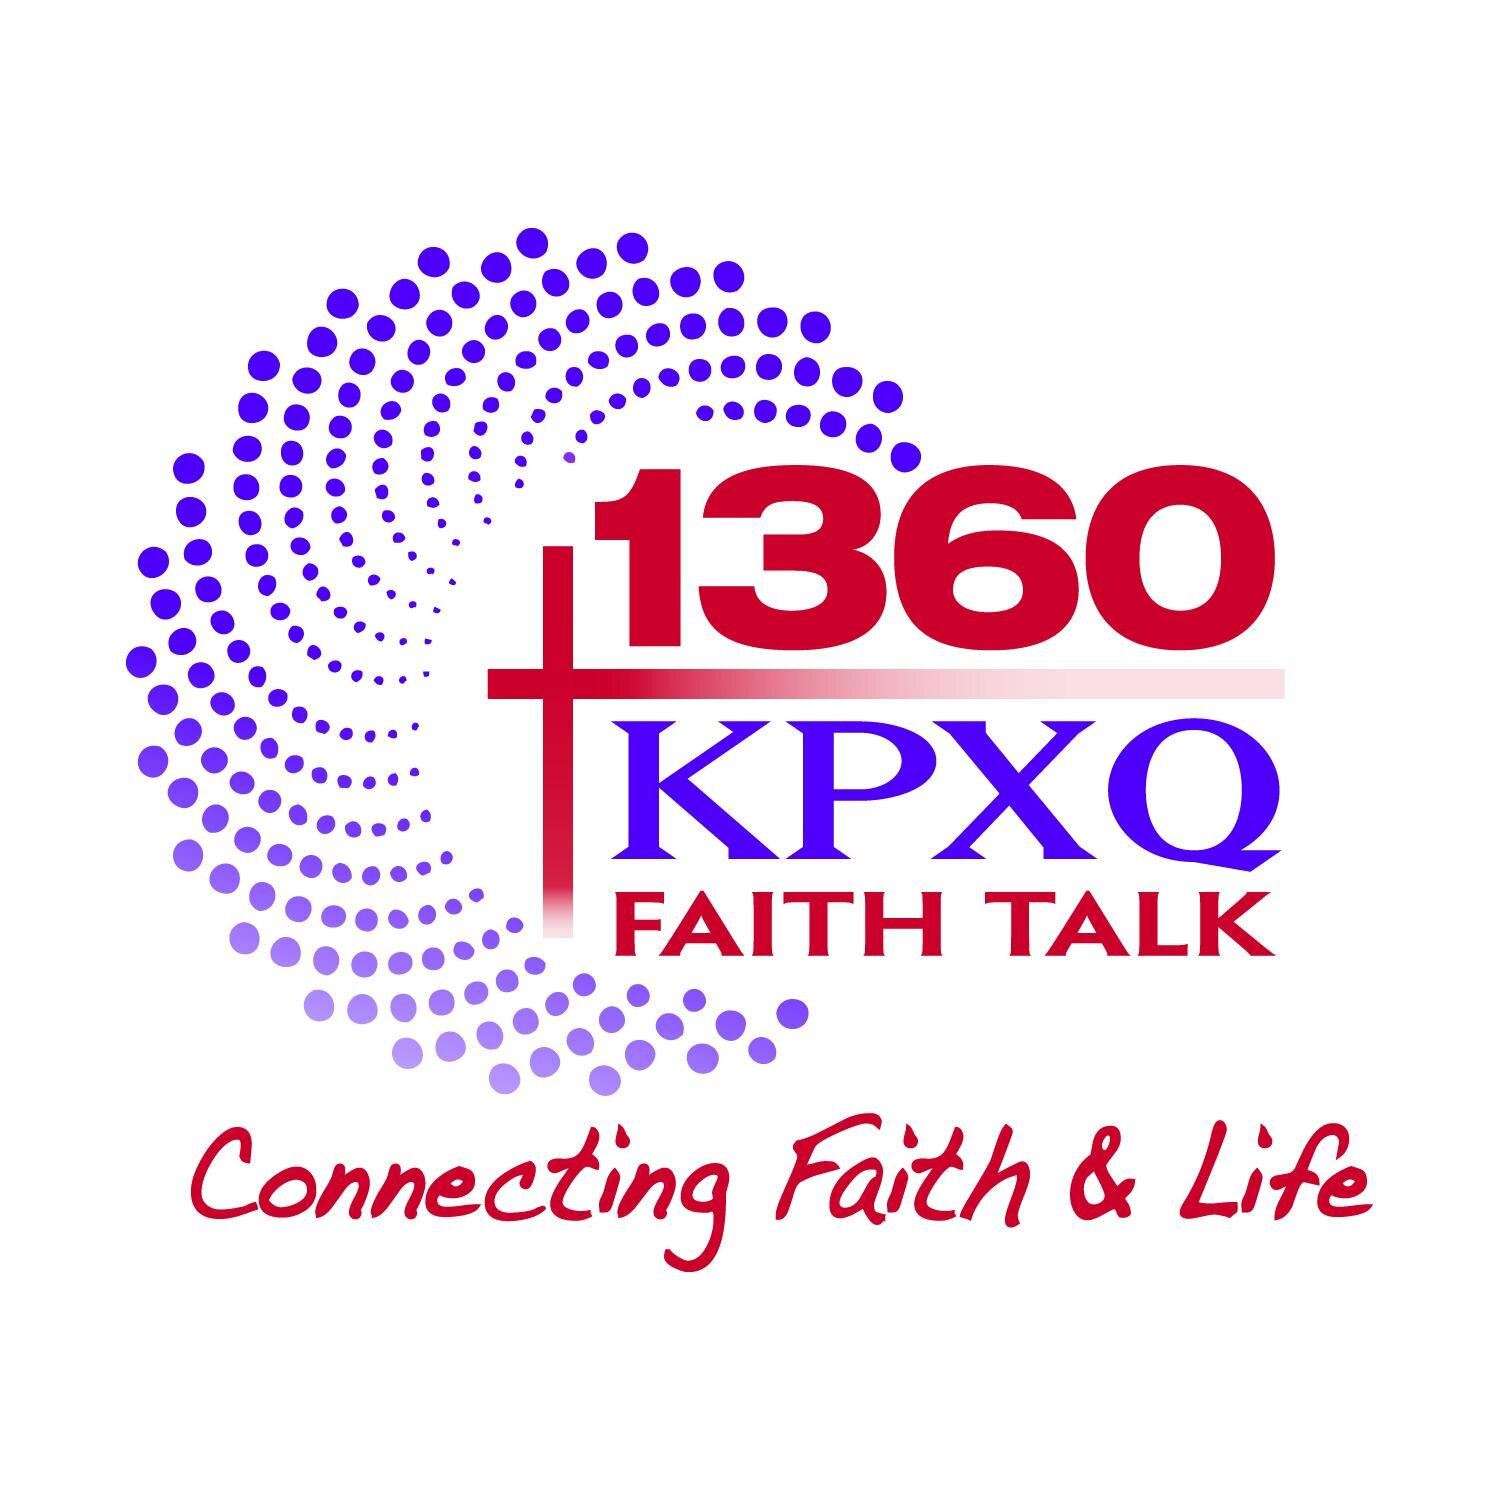 Faith Talk 1360 KPXQ